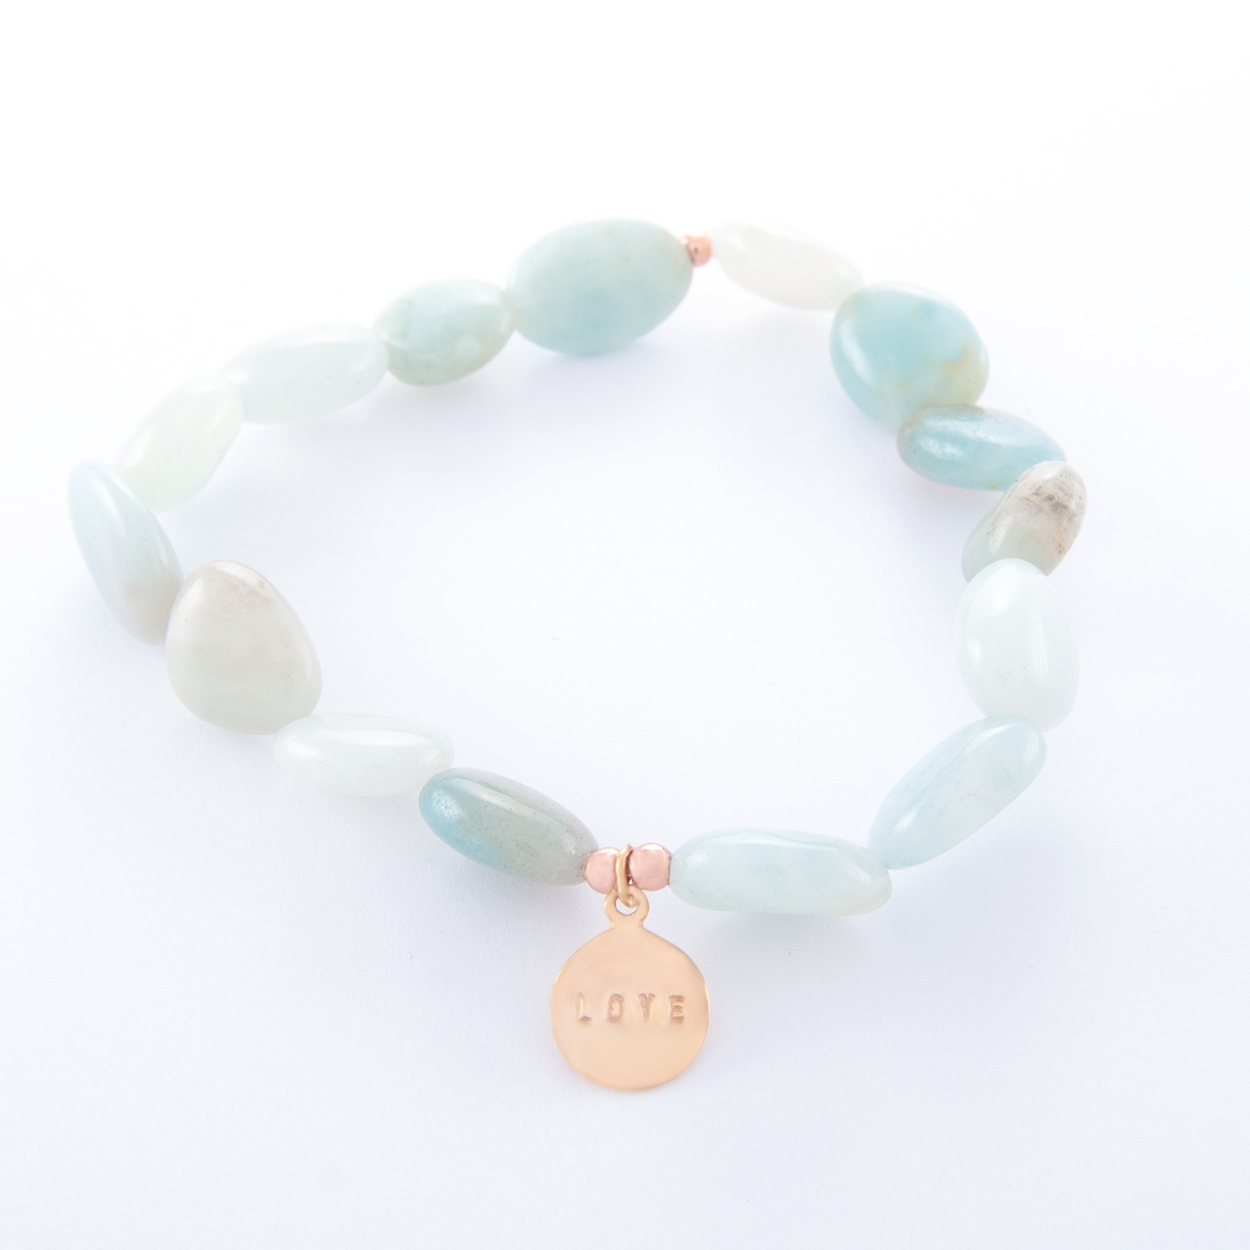 Amazonite-Bracelet-with-Small-Rose-Gold-Love-Disc-